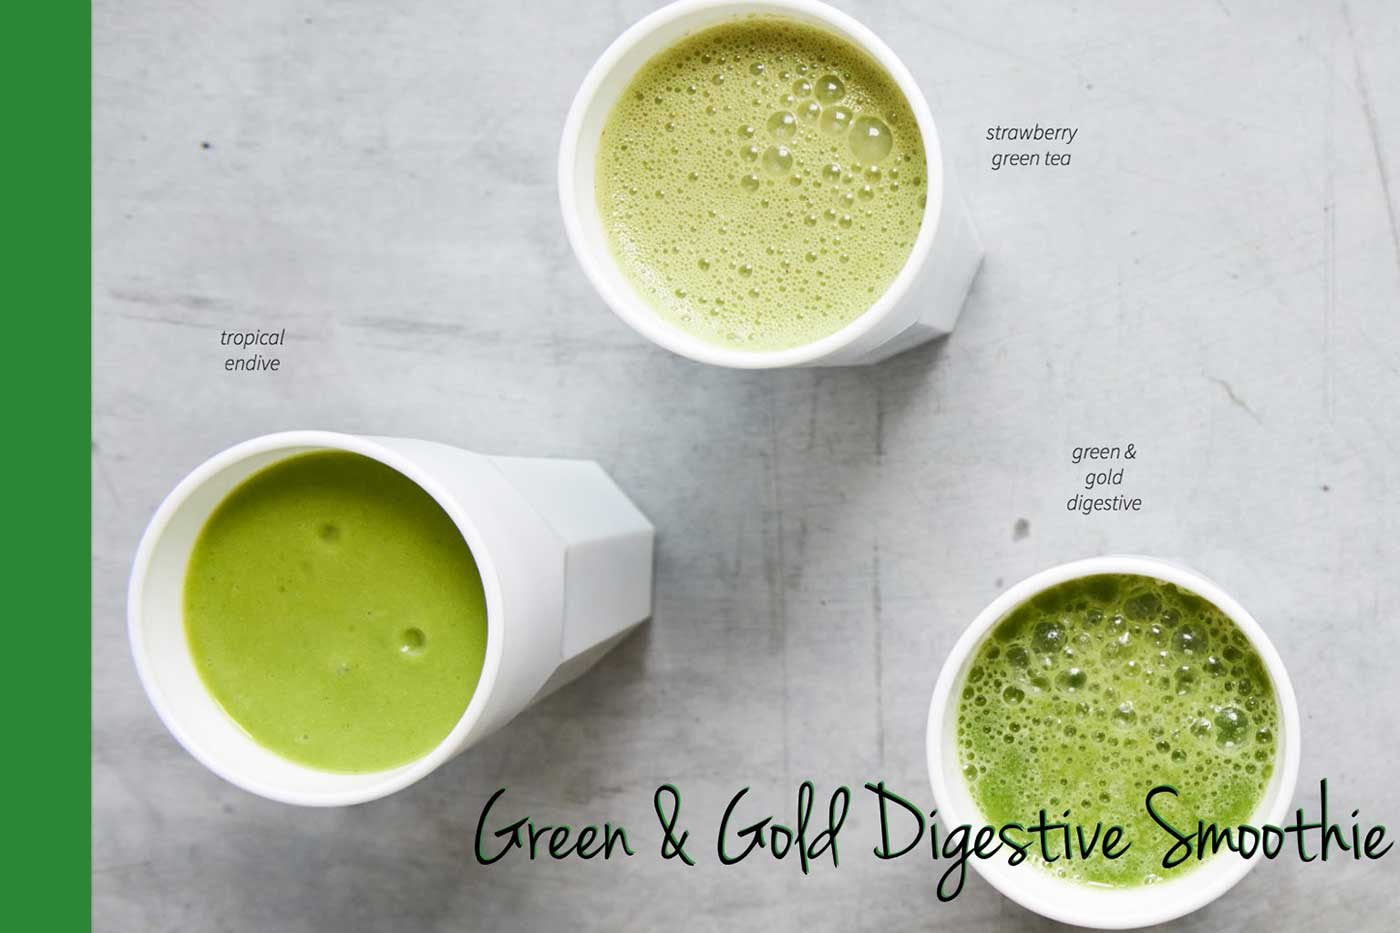 Green-&-Gold-Digestive-Smoothie-Thermomix-Recipe